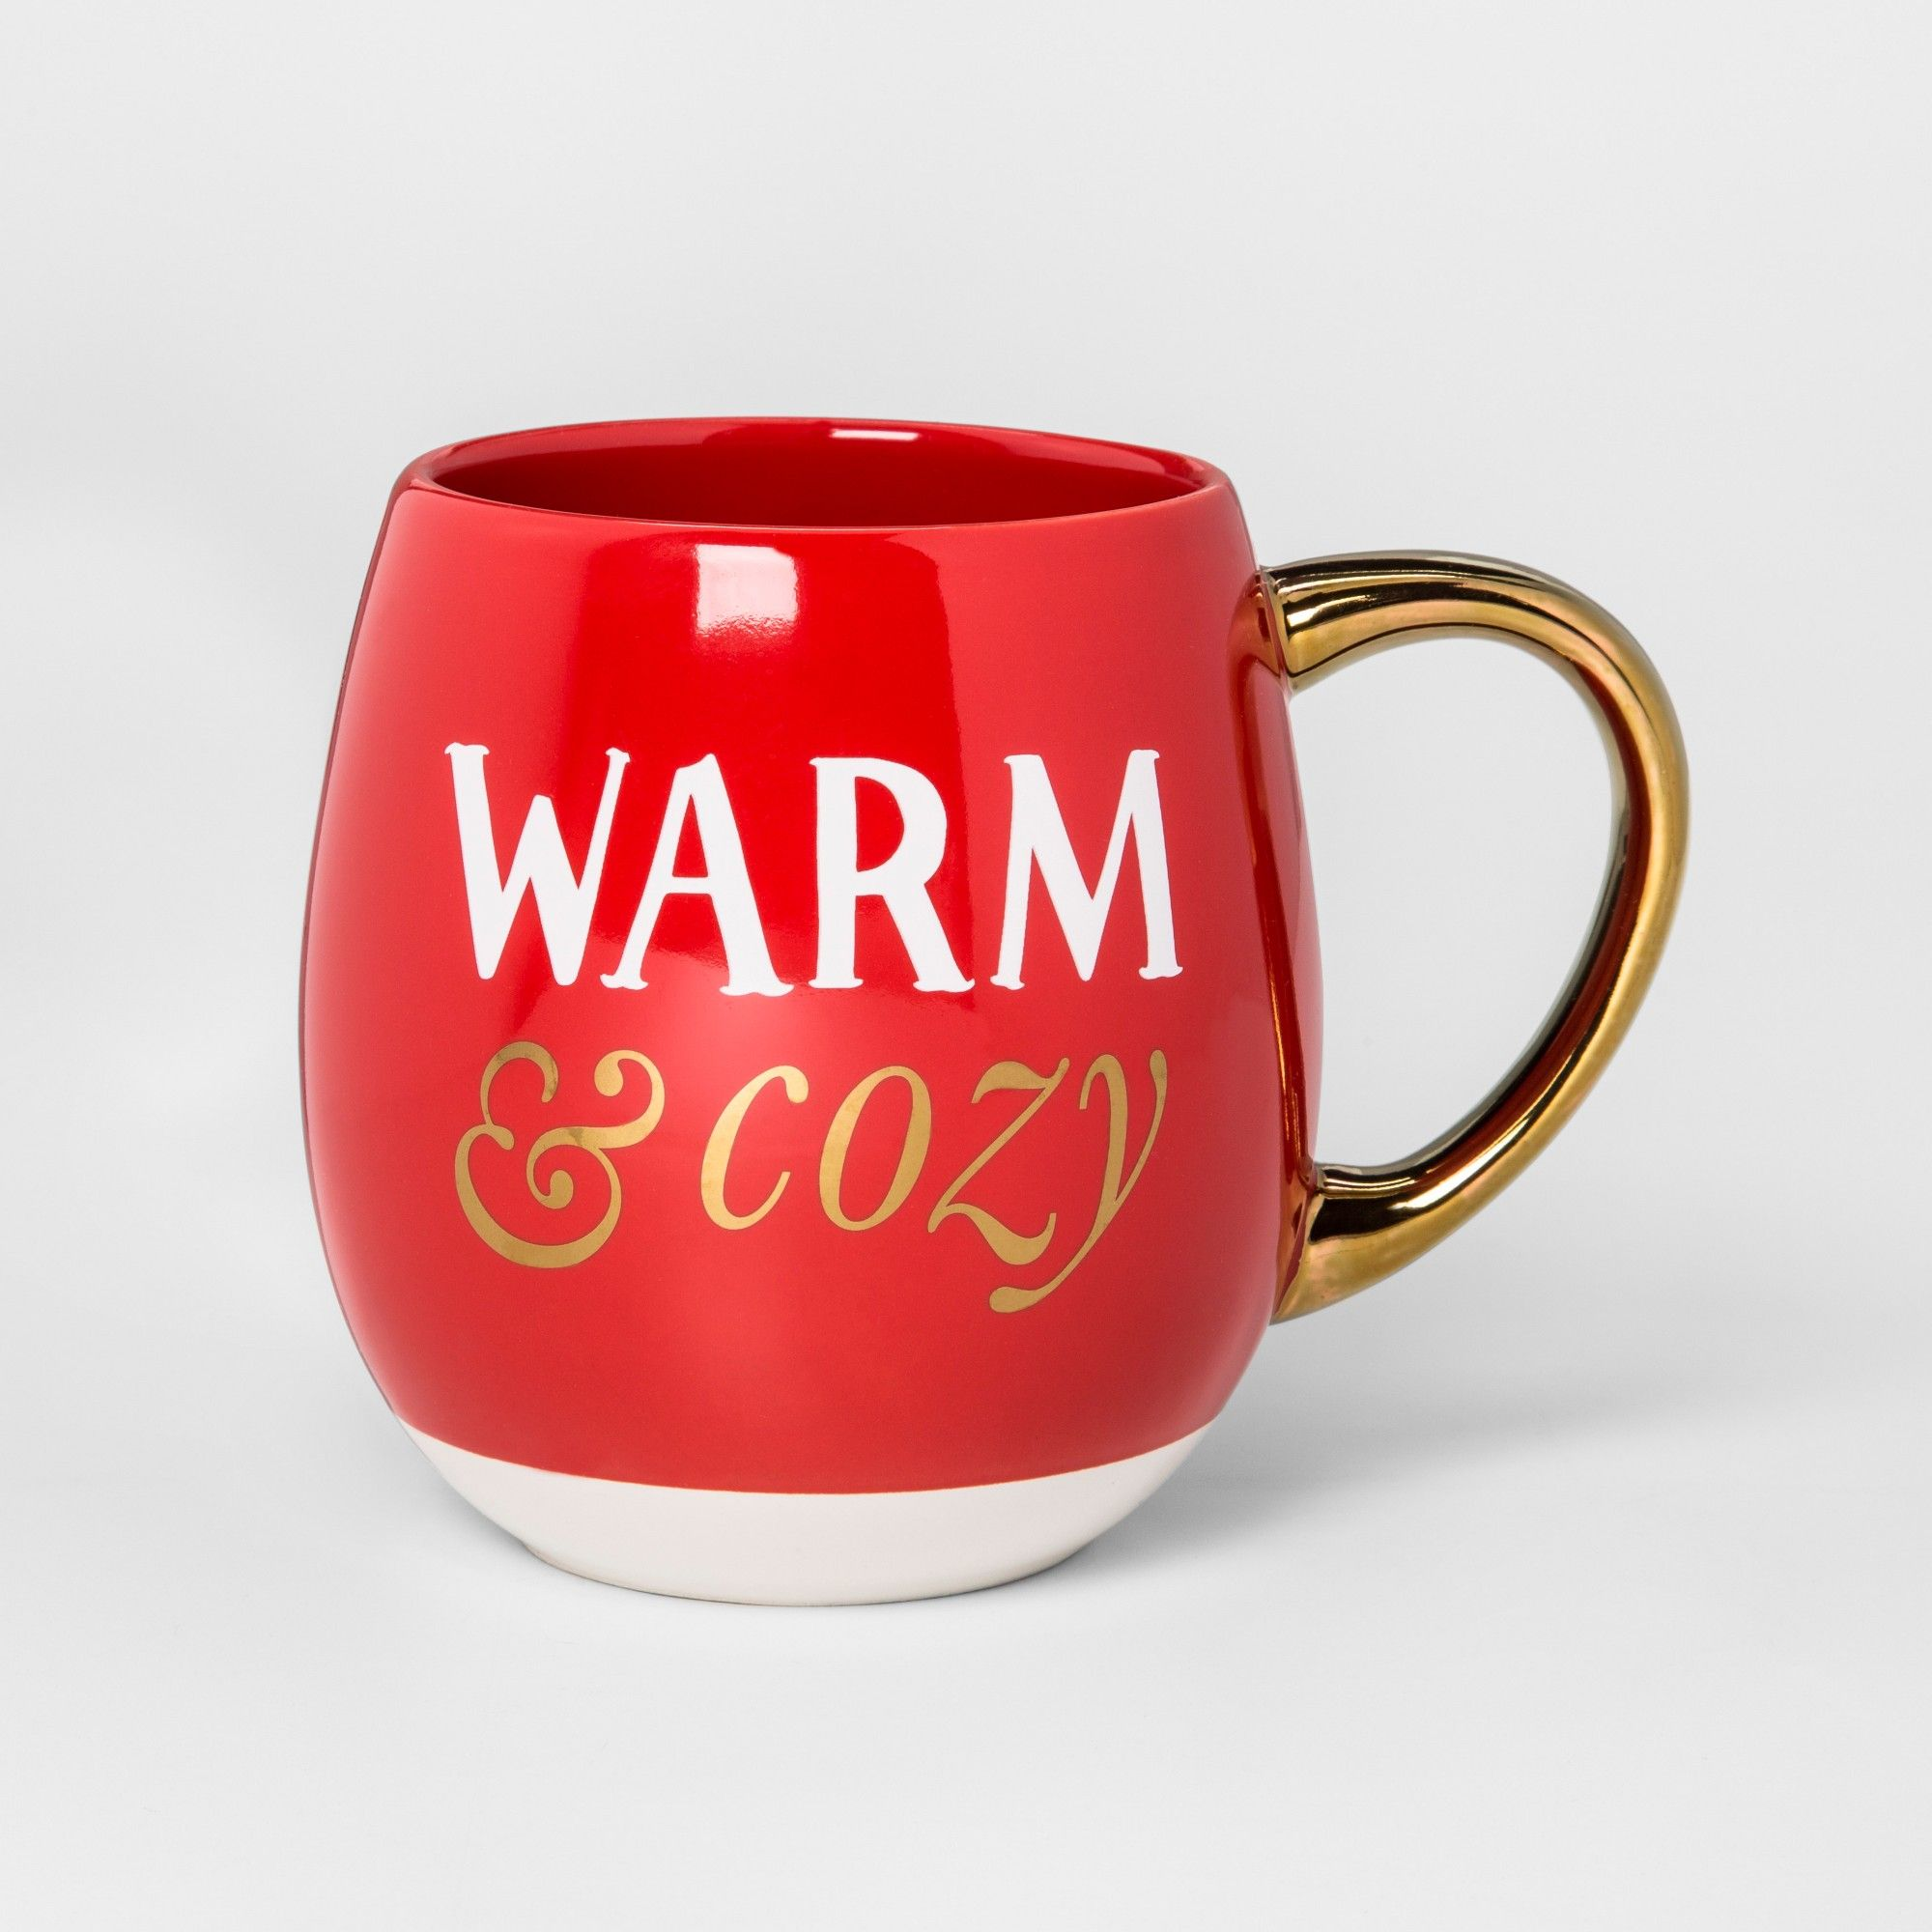 Stoneware Warm and Cozy Mug 17.5oz Red/White/Gold